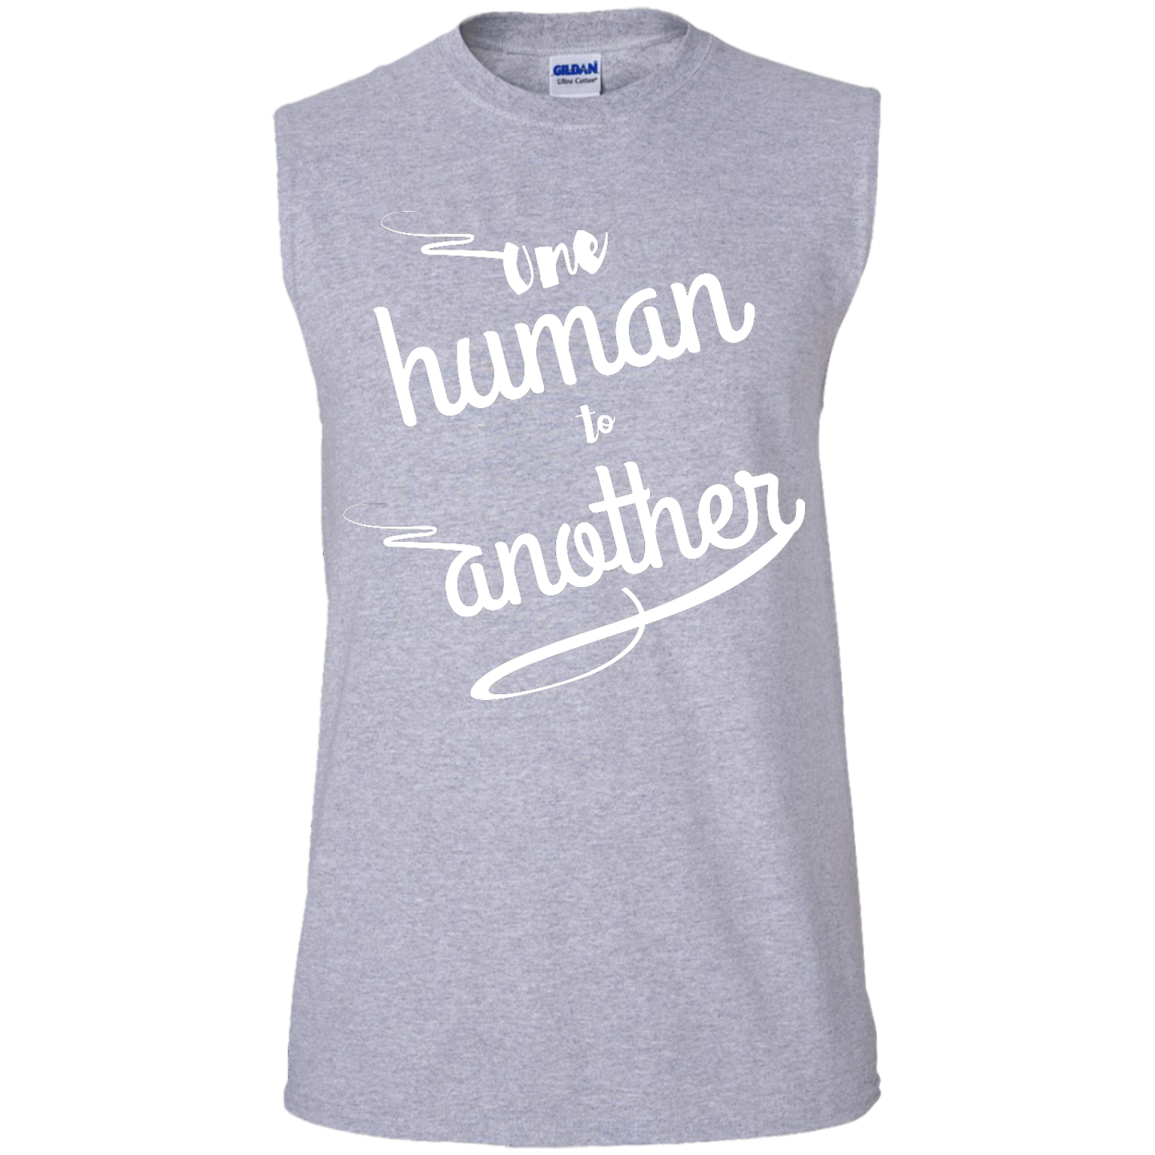 One Human To Another | Performance T-Shirt